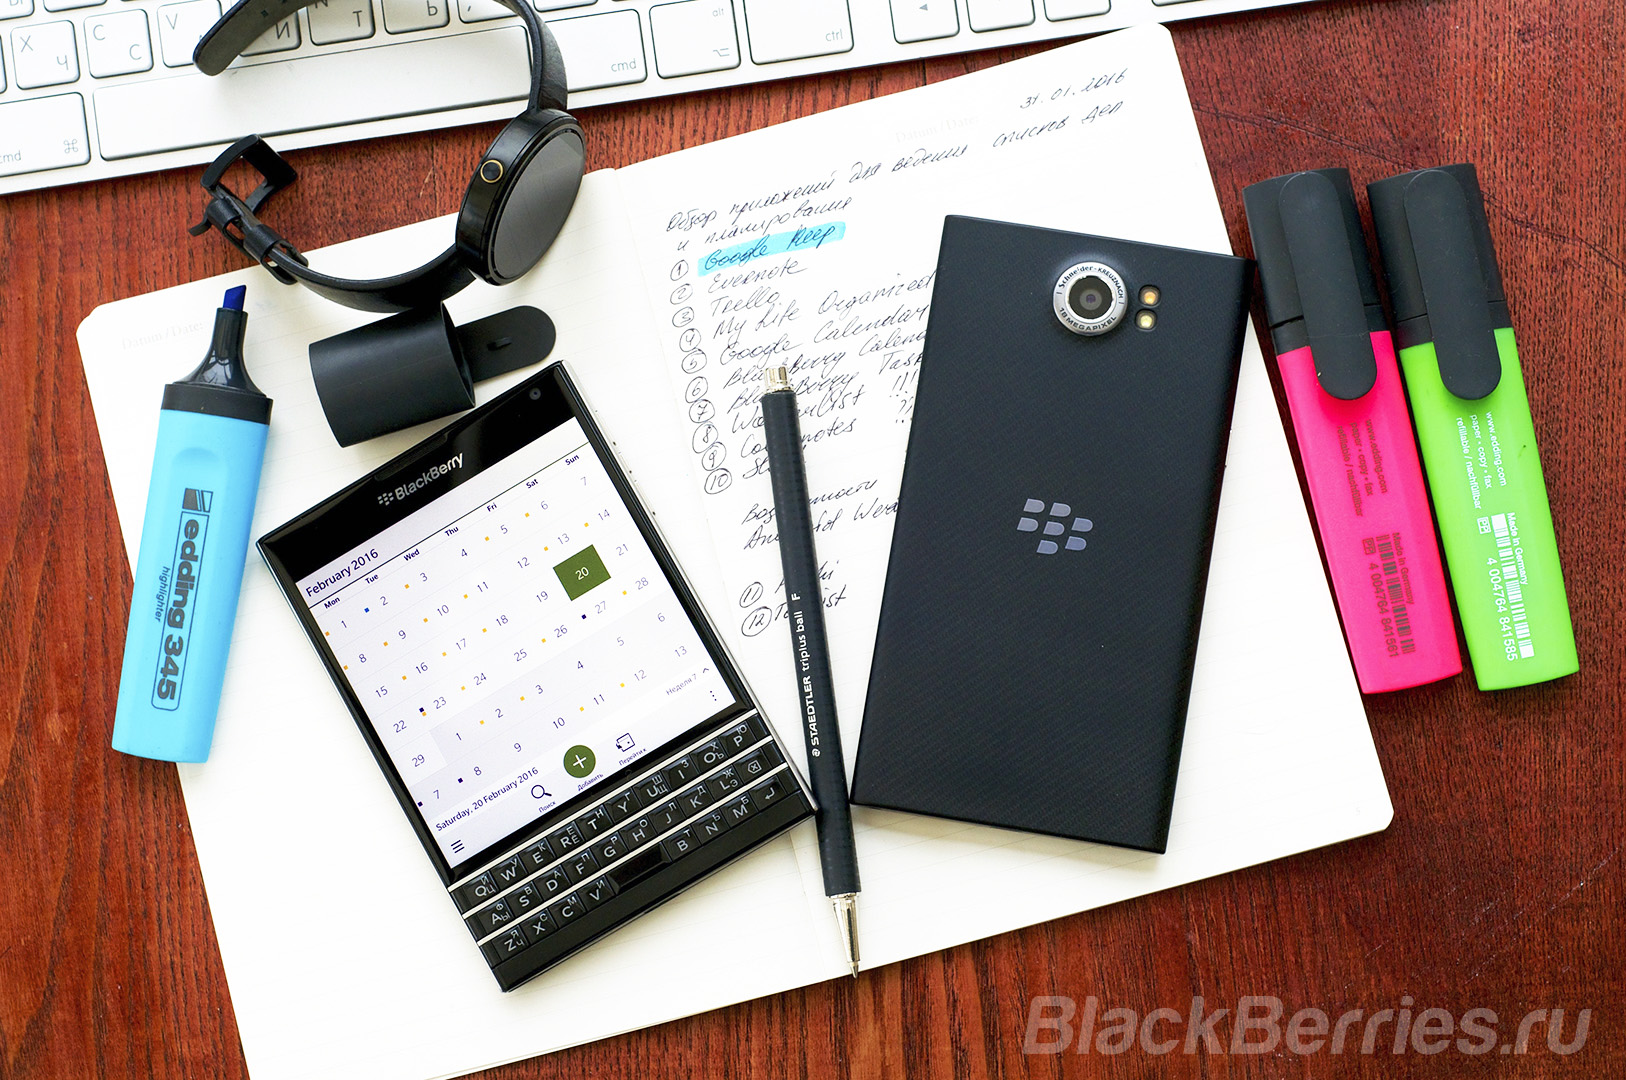 BlackBerry-Apps-20-02-28